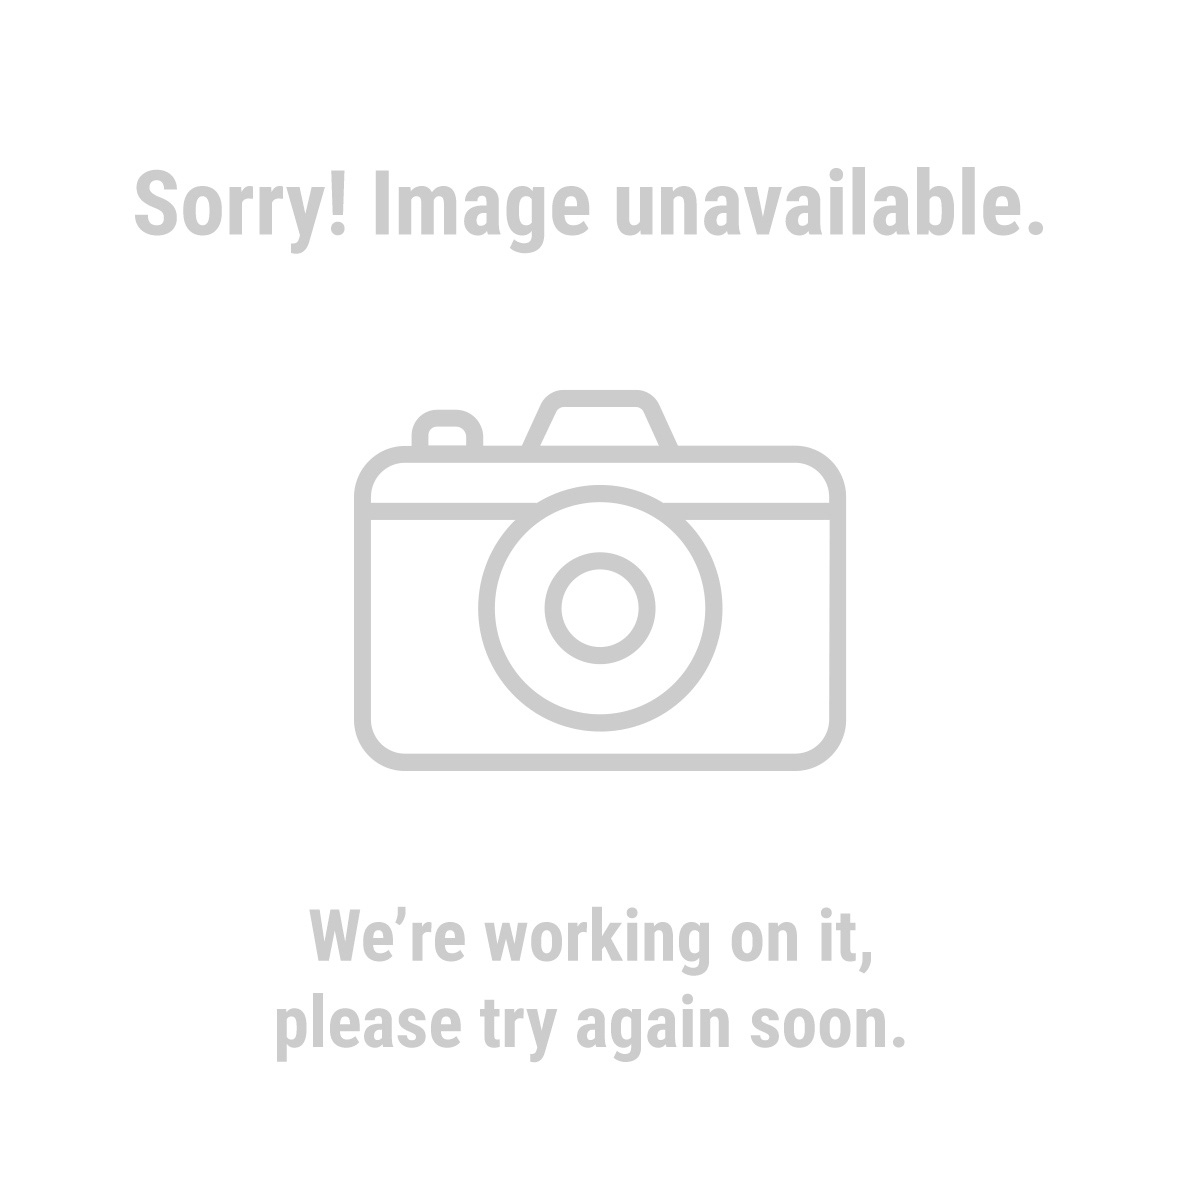 HFT 61798 2 in. Keyed-Alike Padlocks 2 Pc